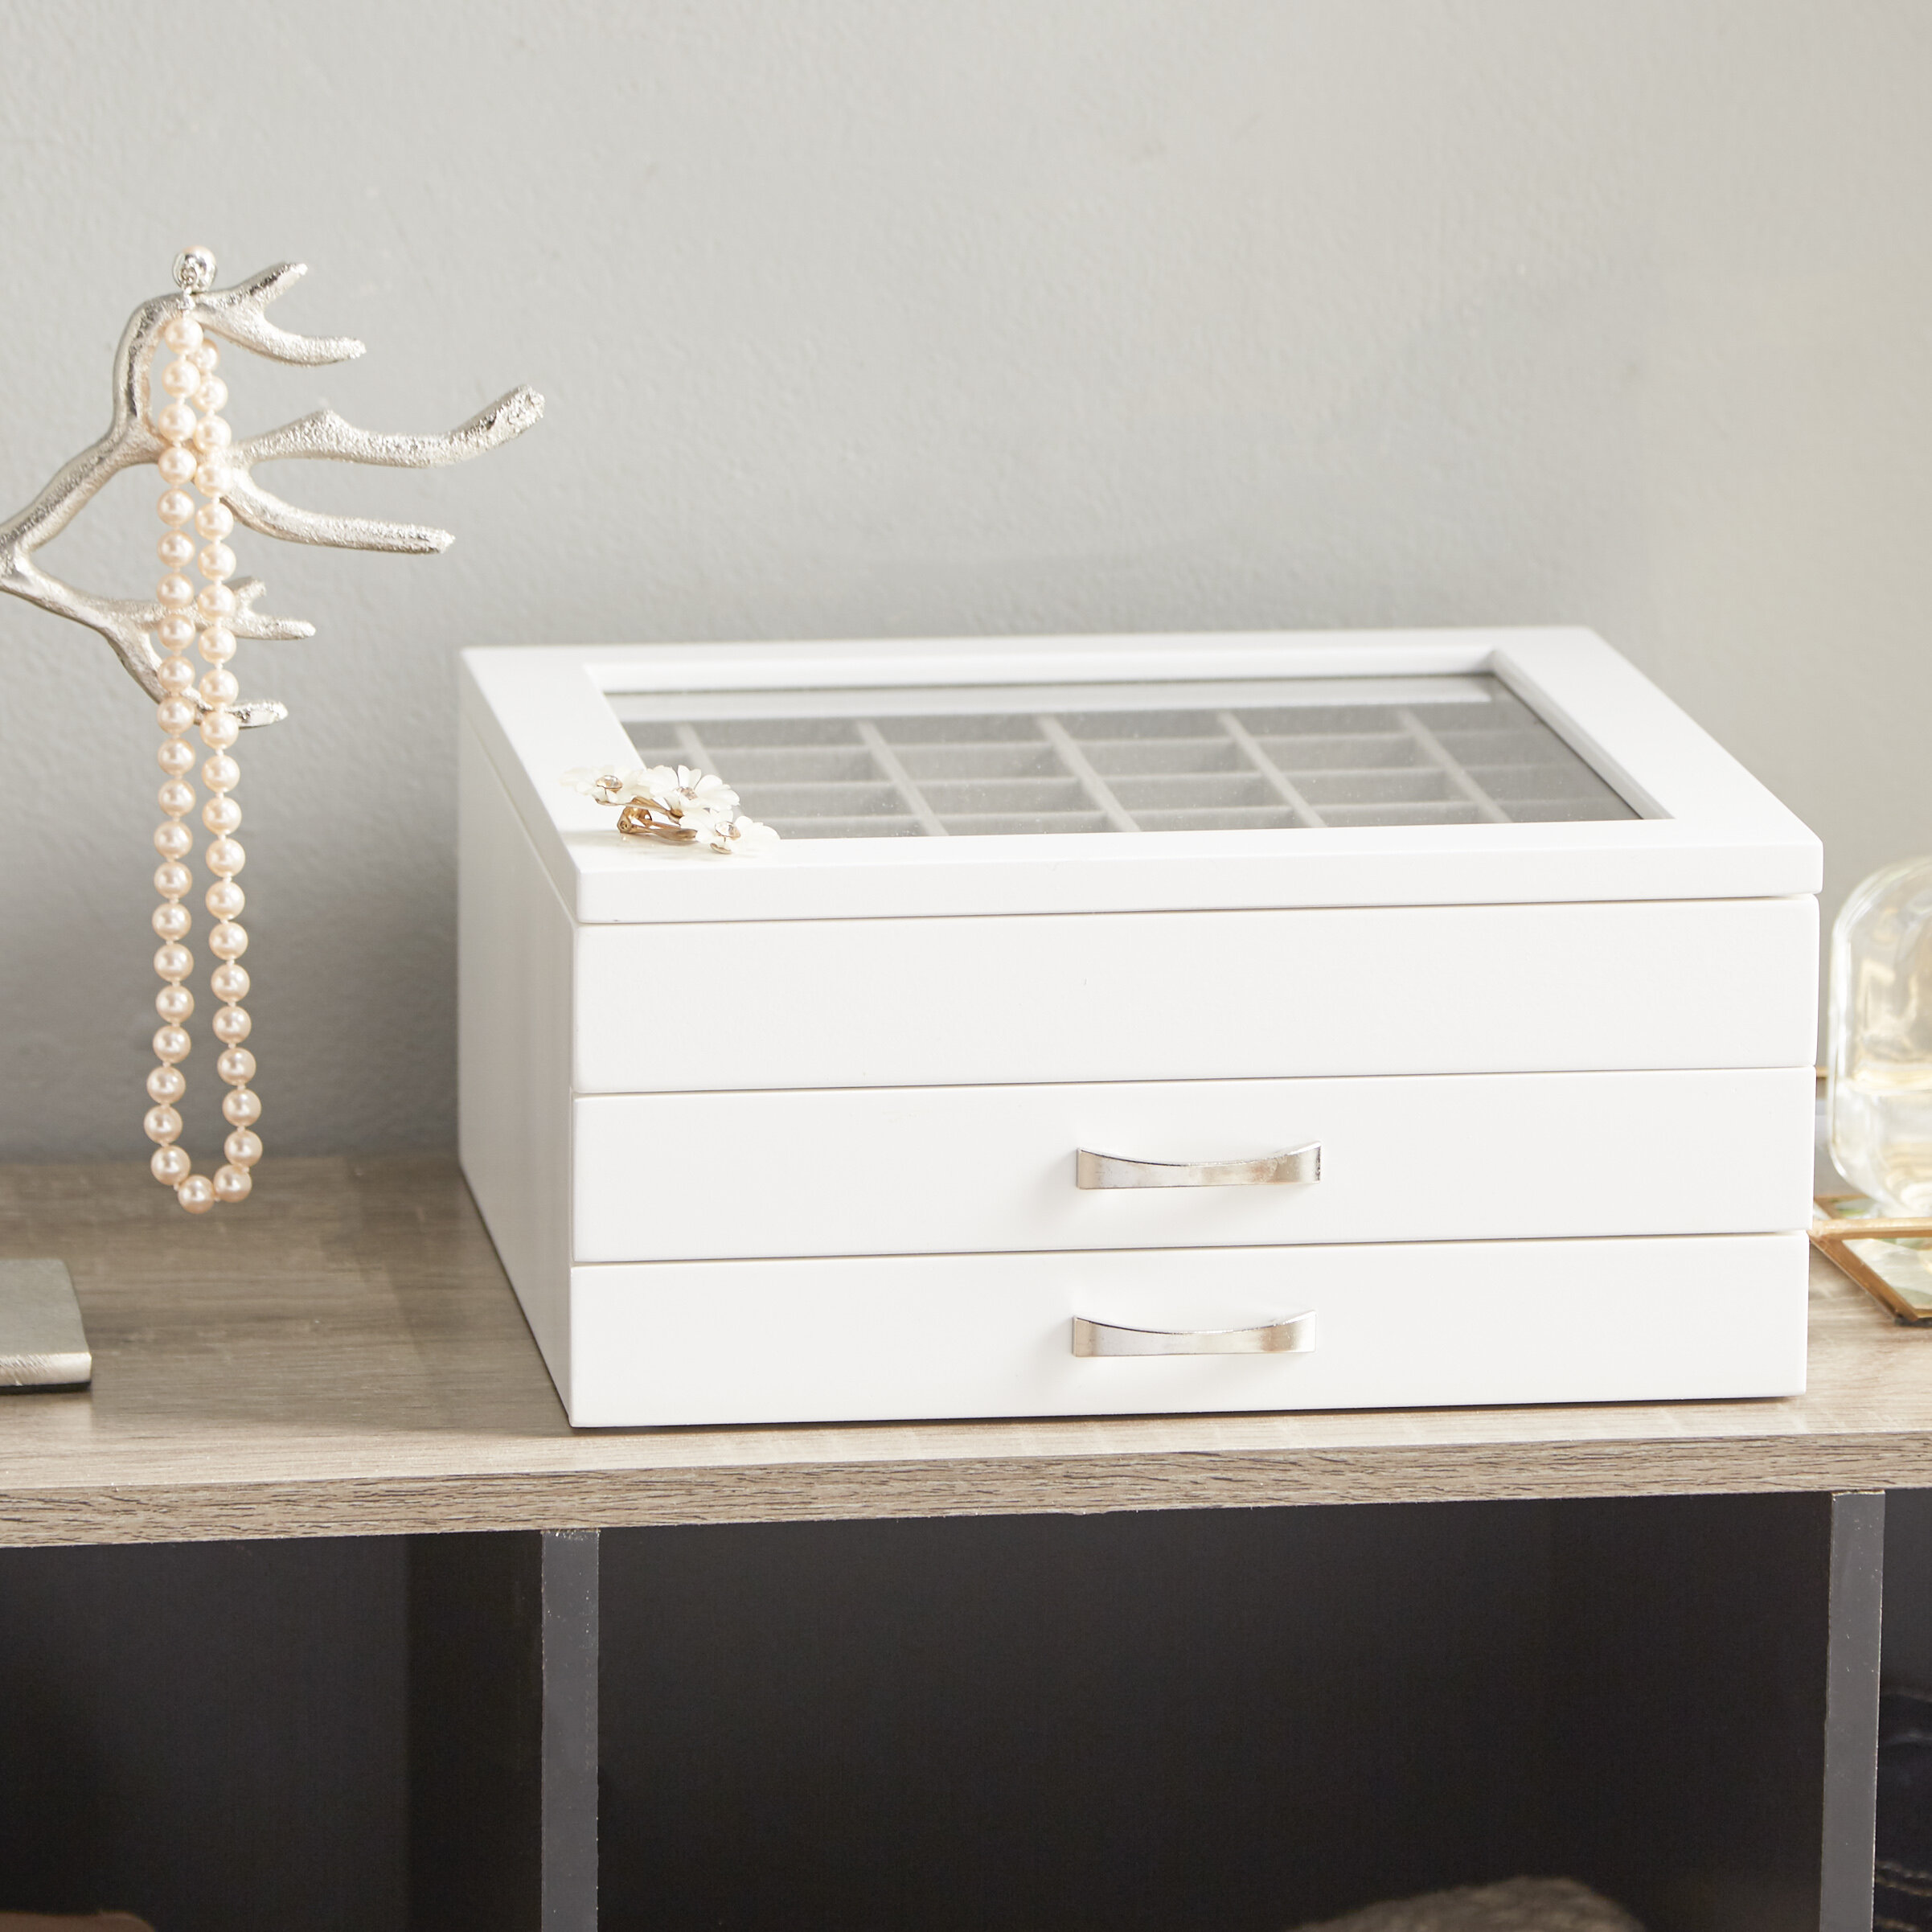 Modern Contemporary Jewelry Organizers You Ll Love In 2021 Wayfair